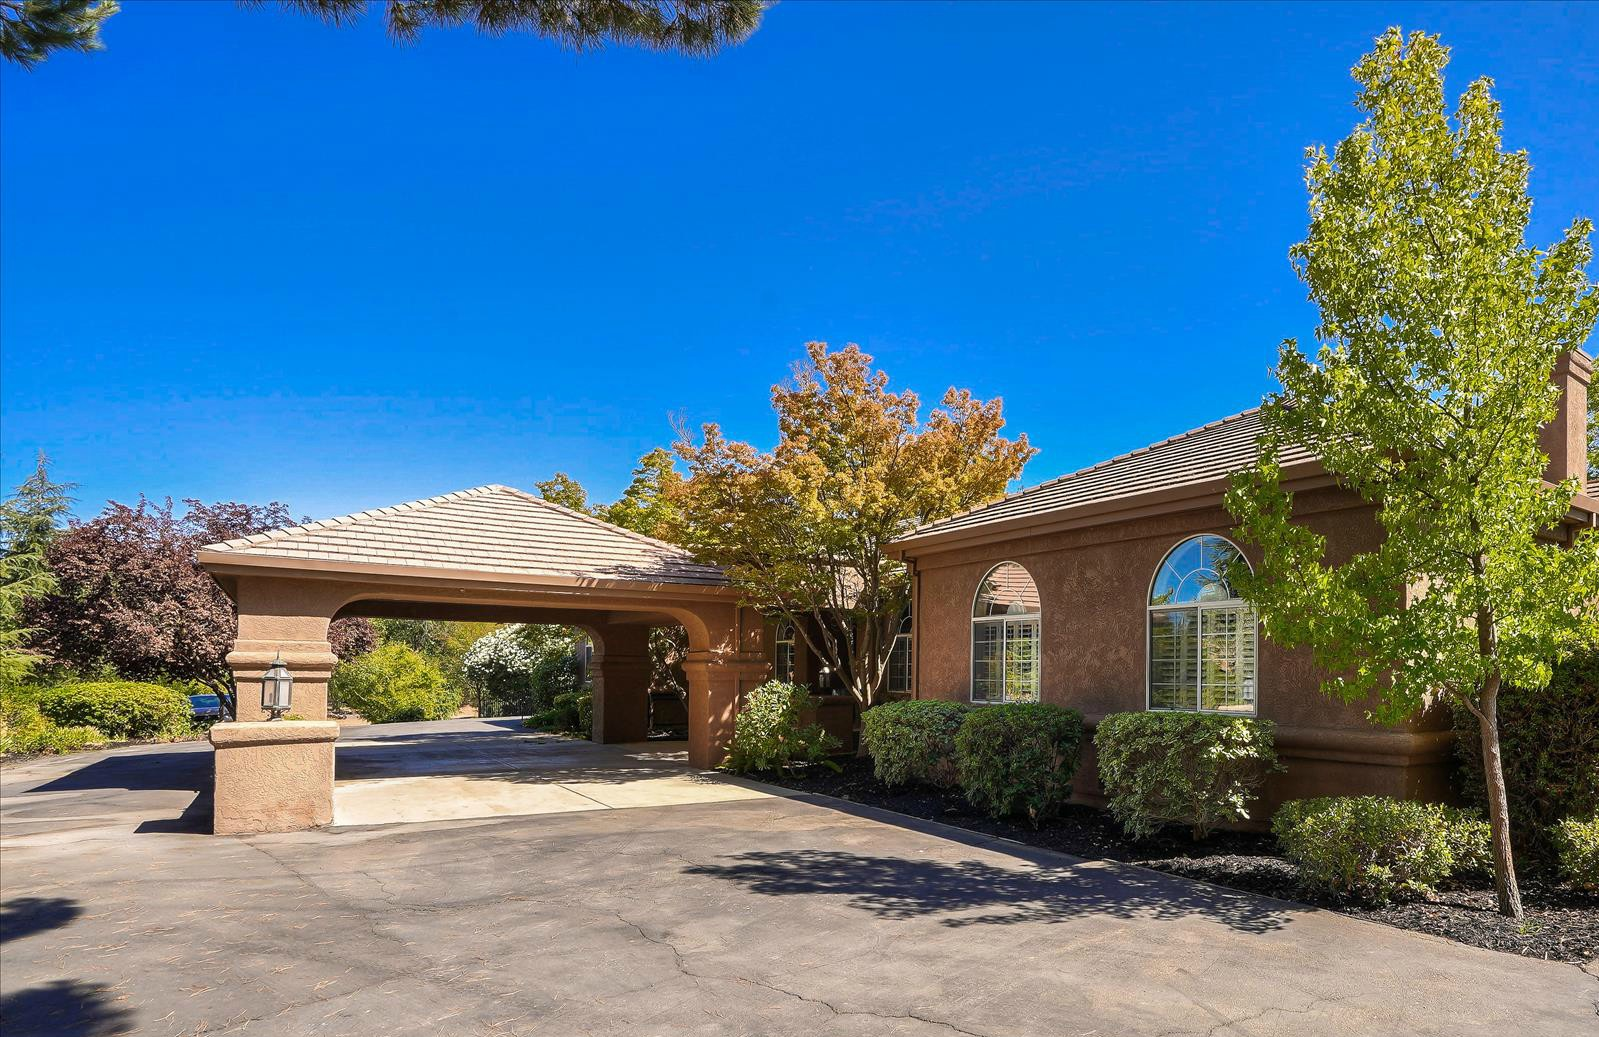 1250 Hilliker Pl., Livermore Photo